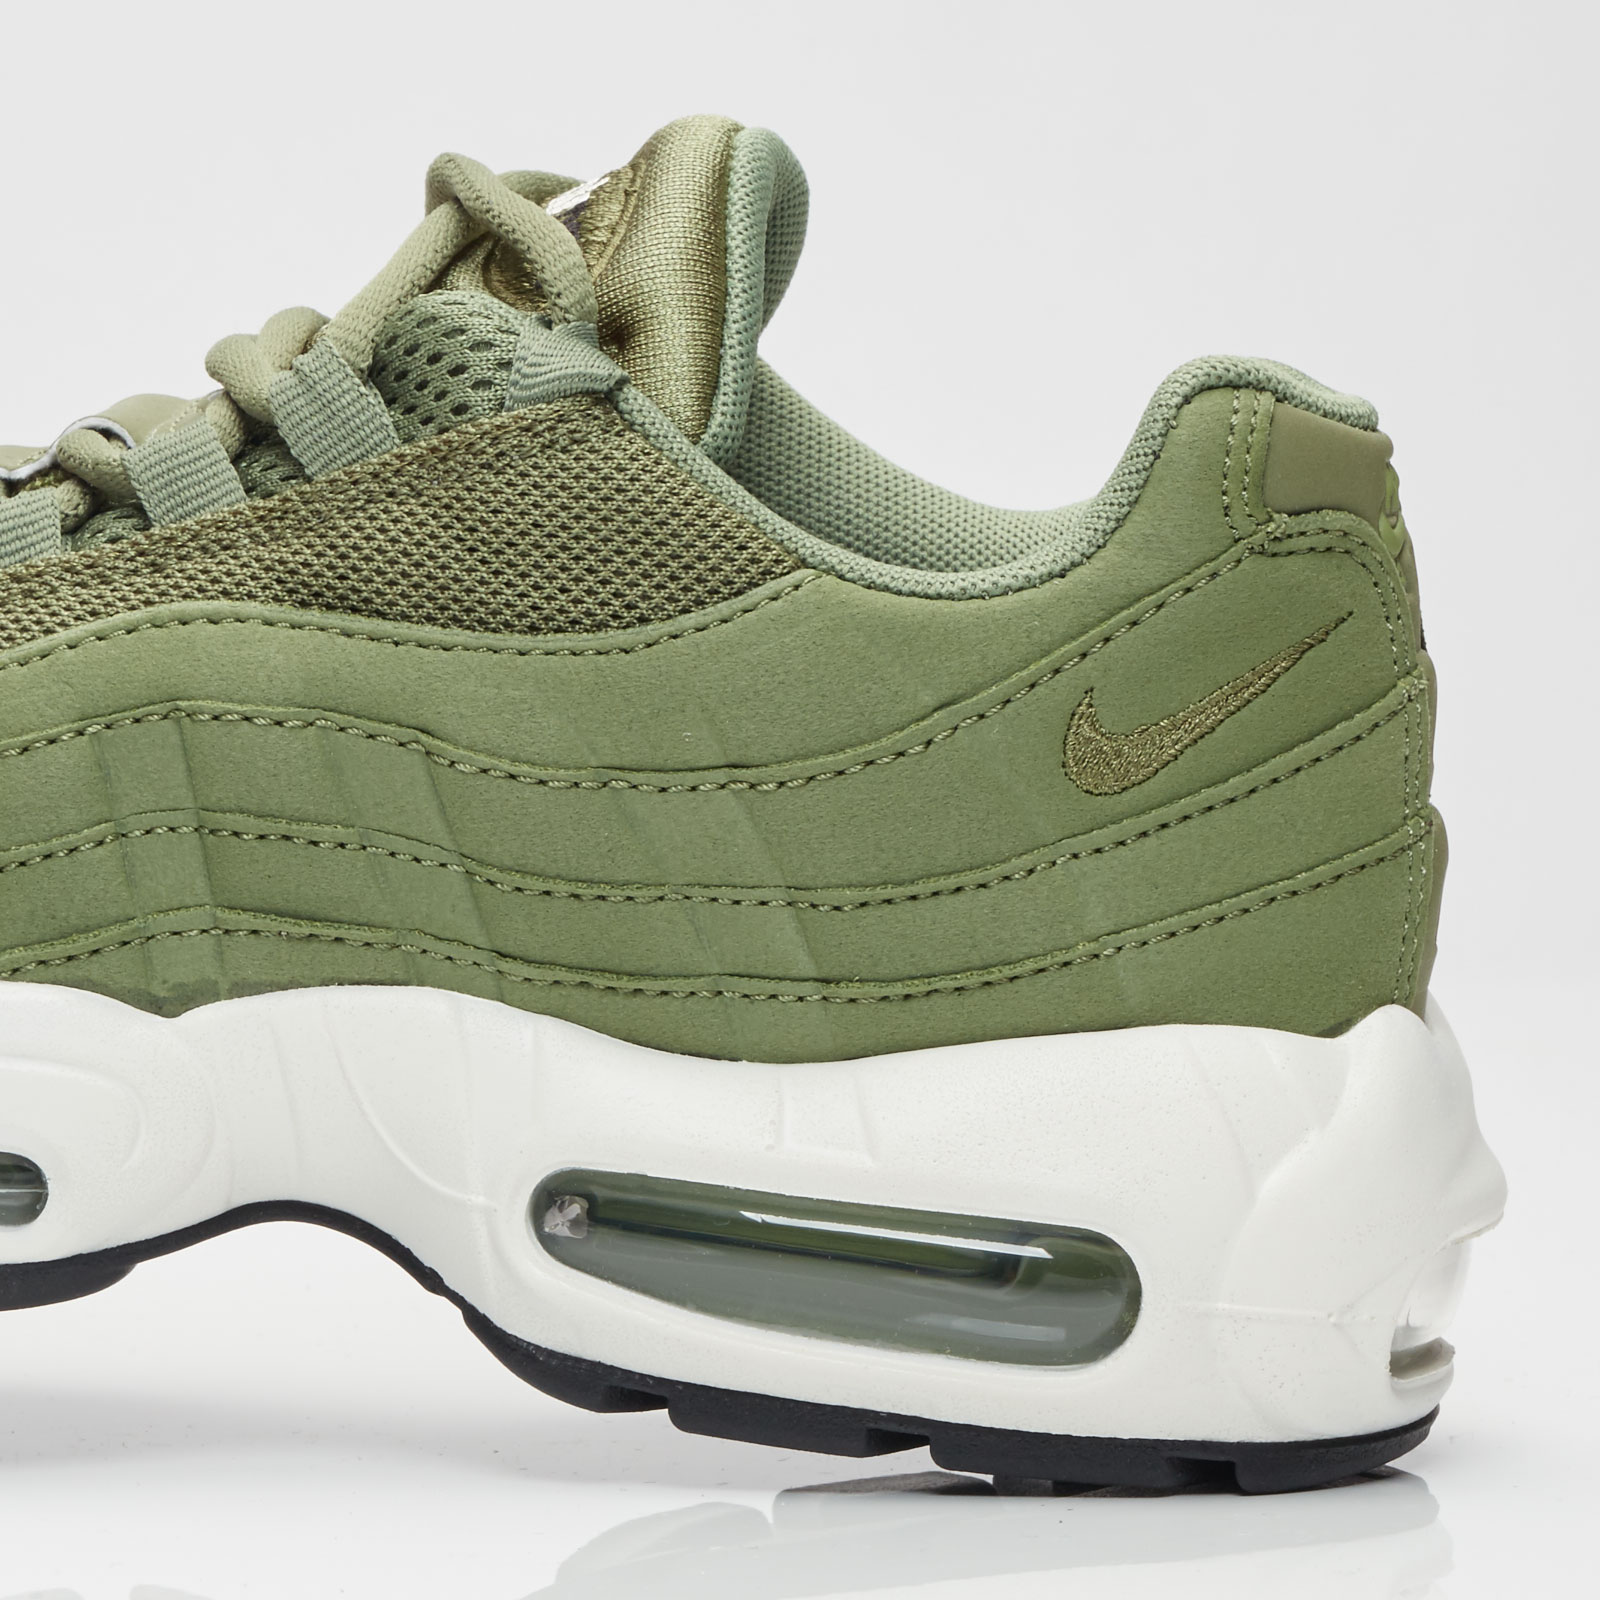 fe1413c210 Nike Womens Air Max 95 Palm Green - Air 23 - Air Jordan Release Dates,  Foamposite, Air Max, and More